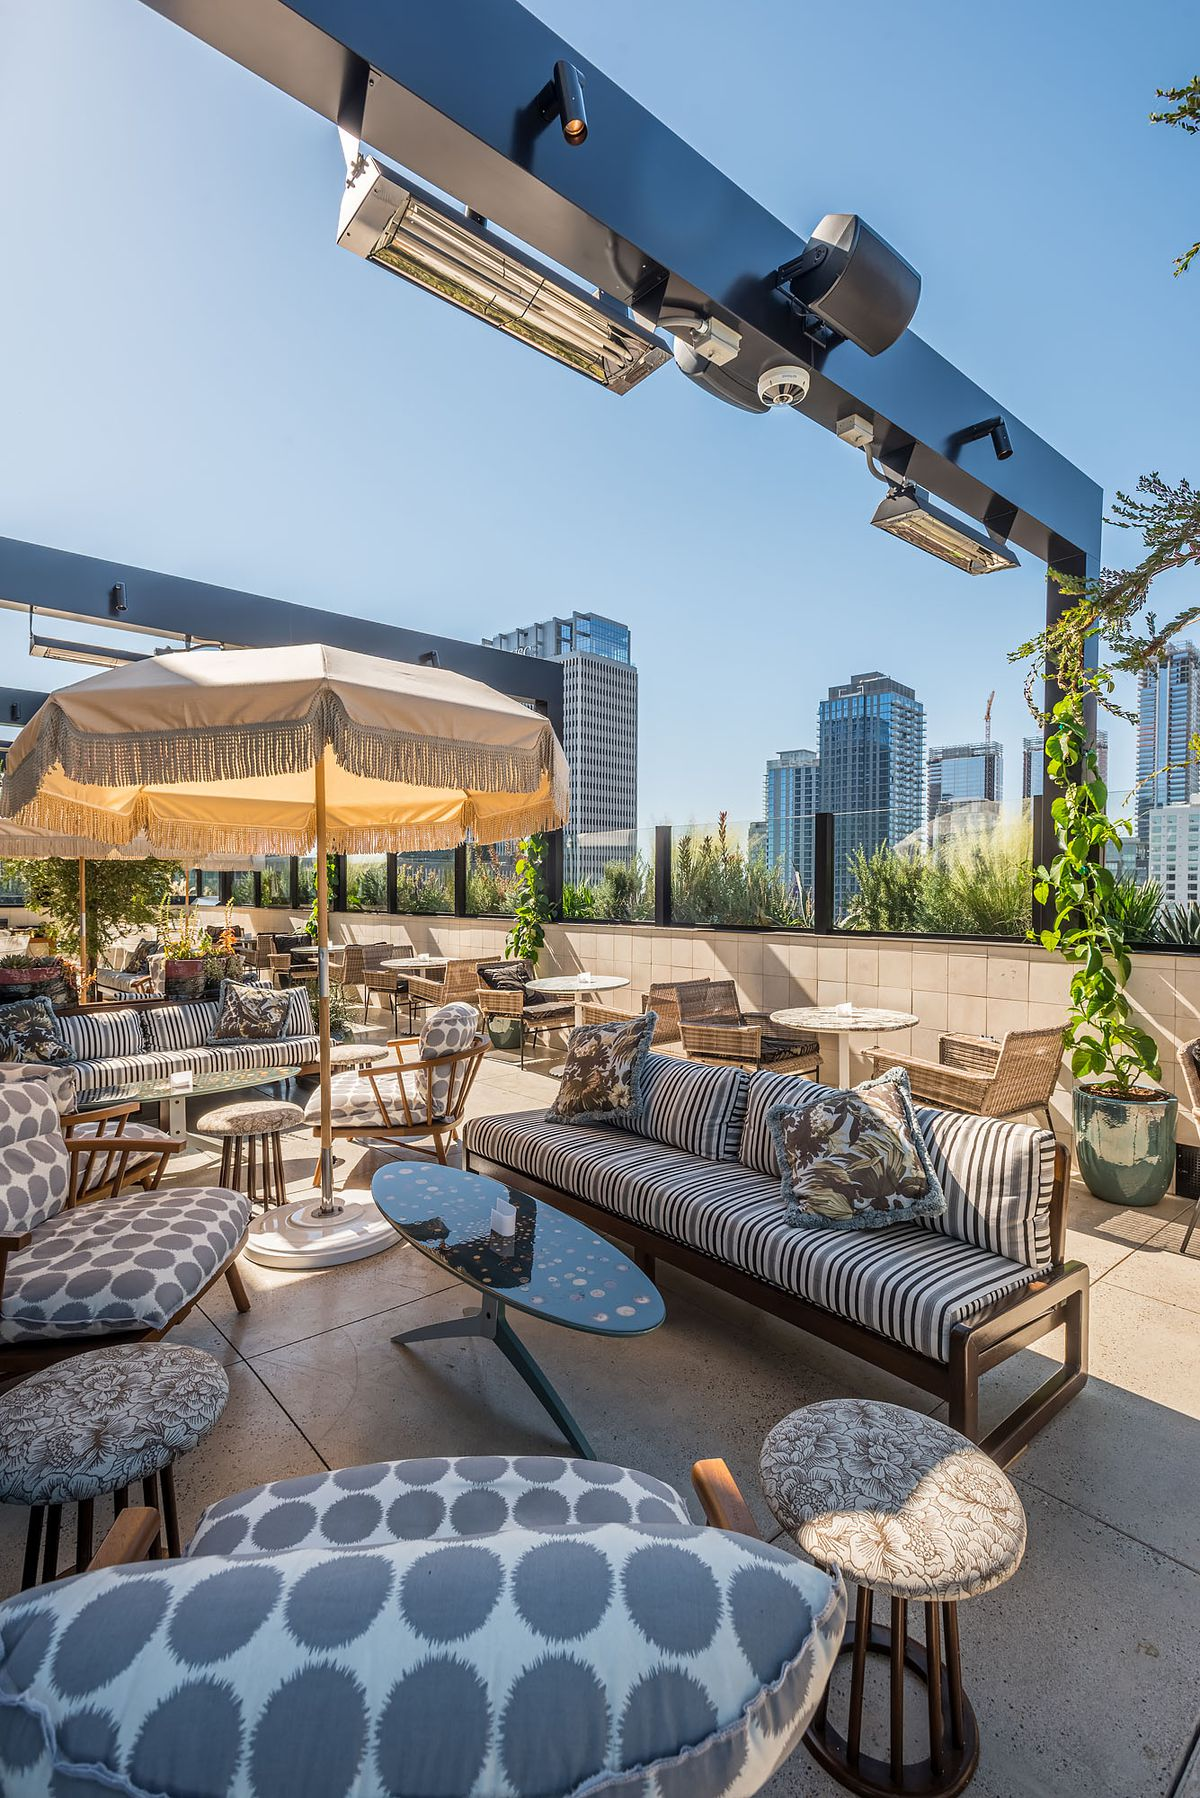 A shaded rooftop bar with tufted seating.